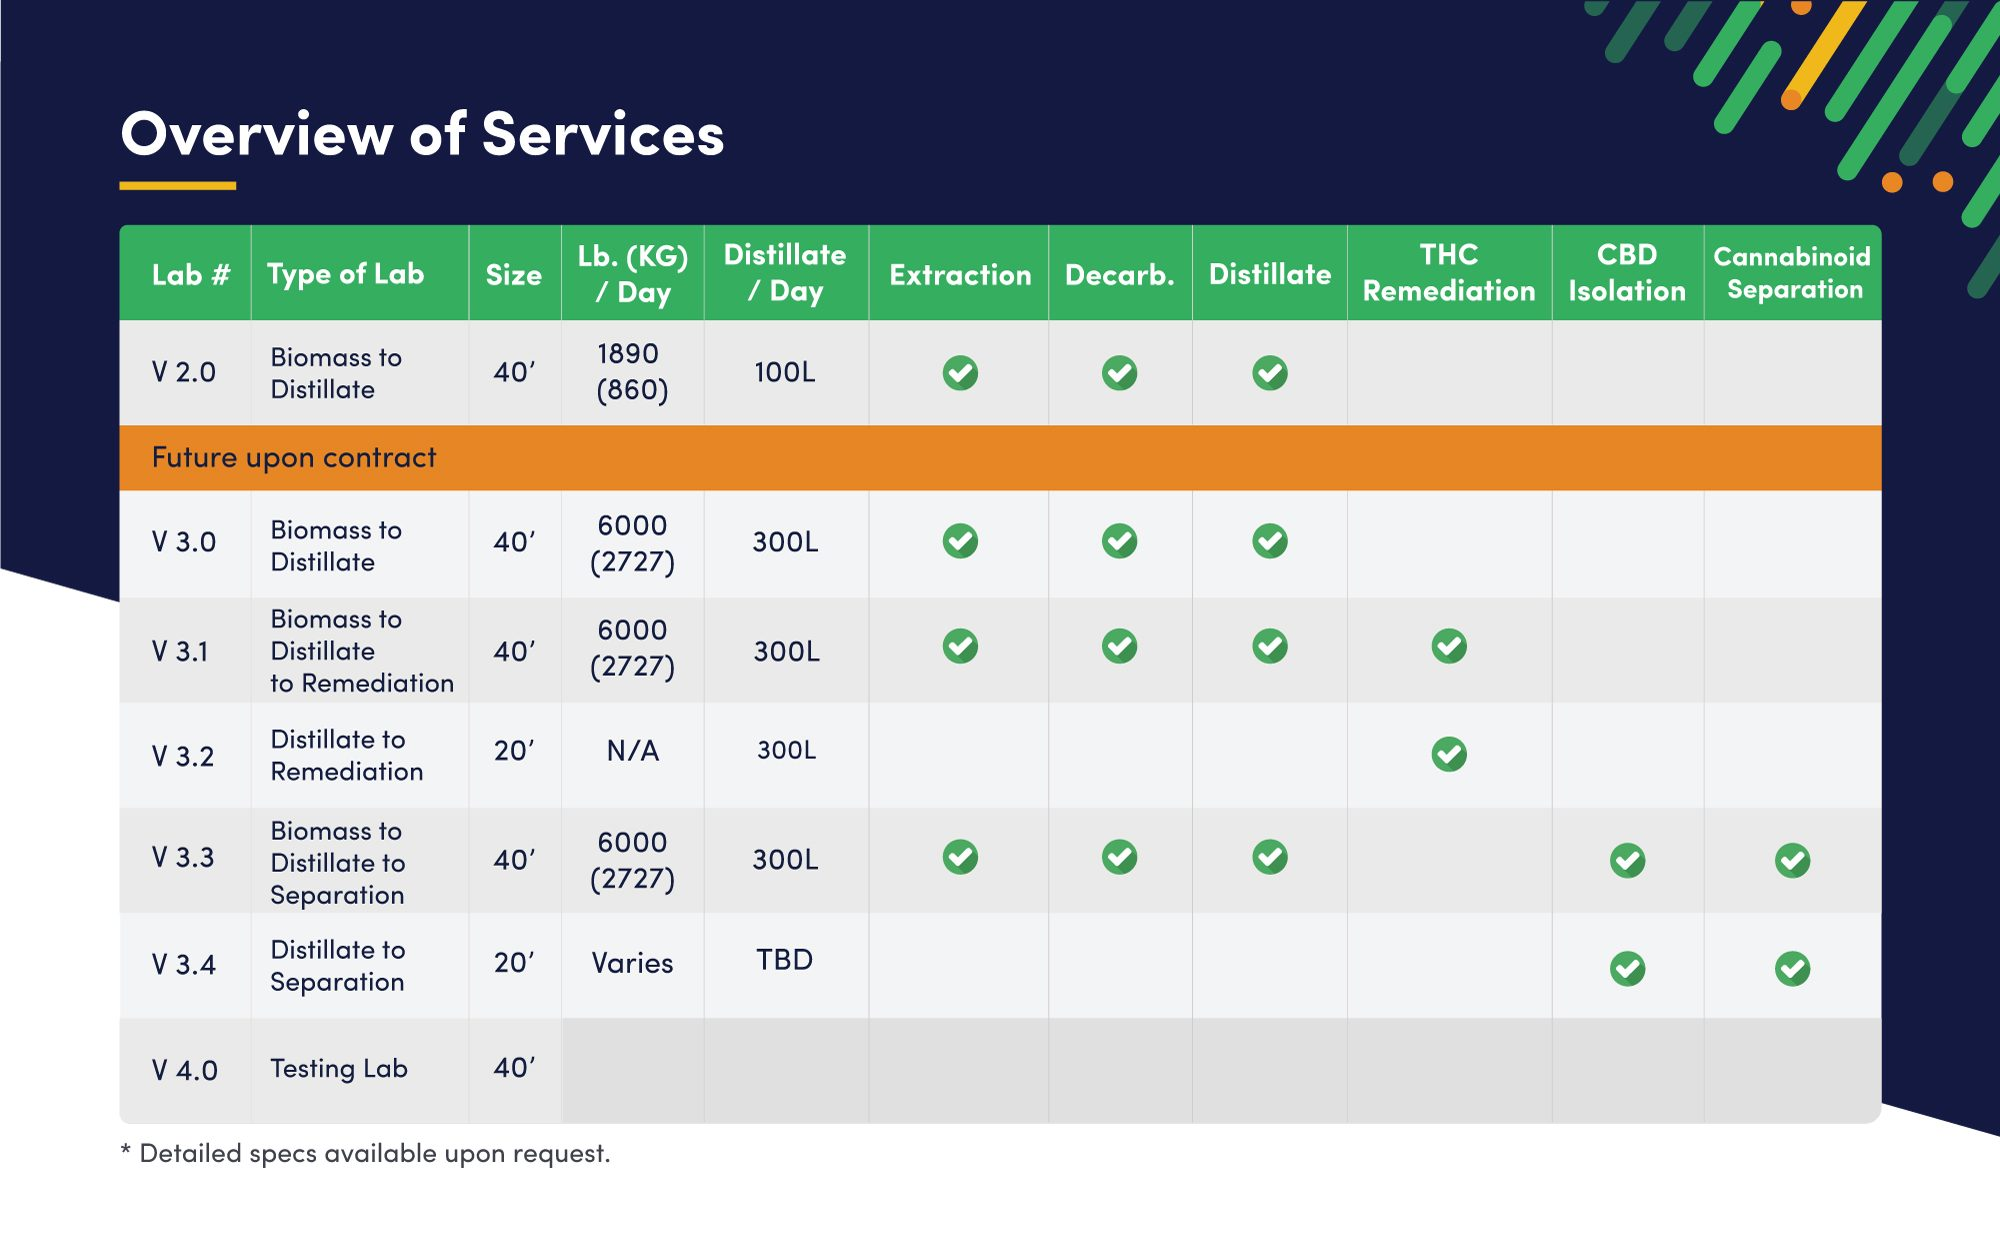 extractX Services - Overview